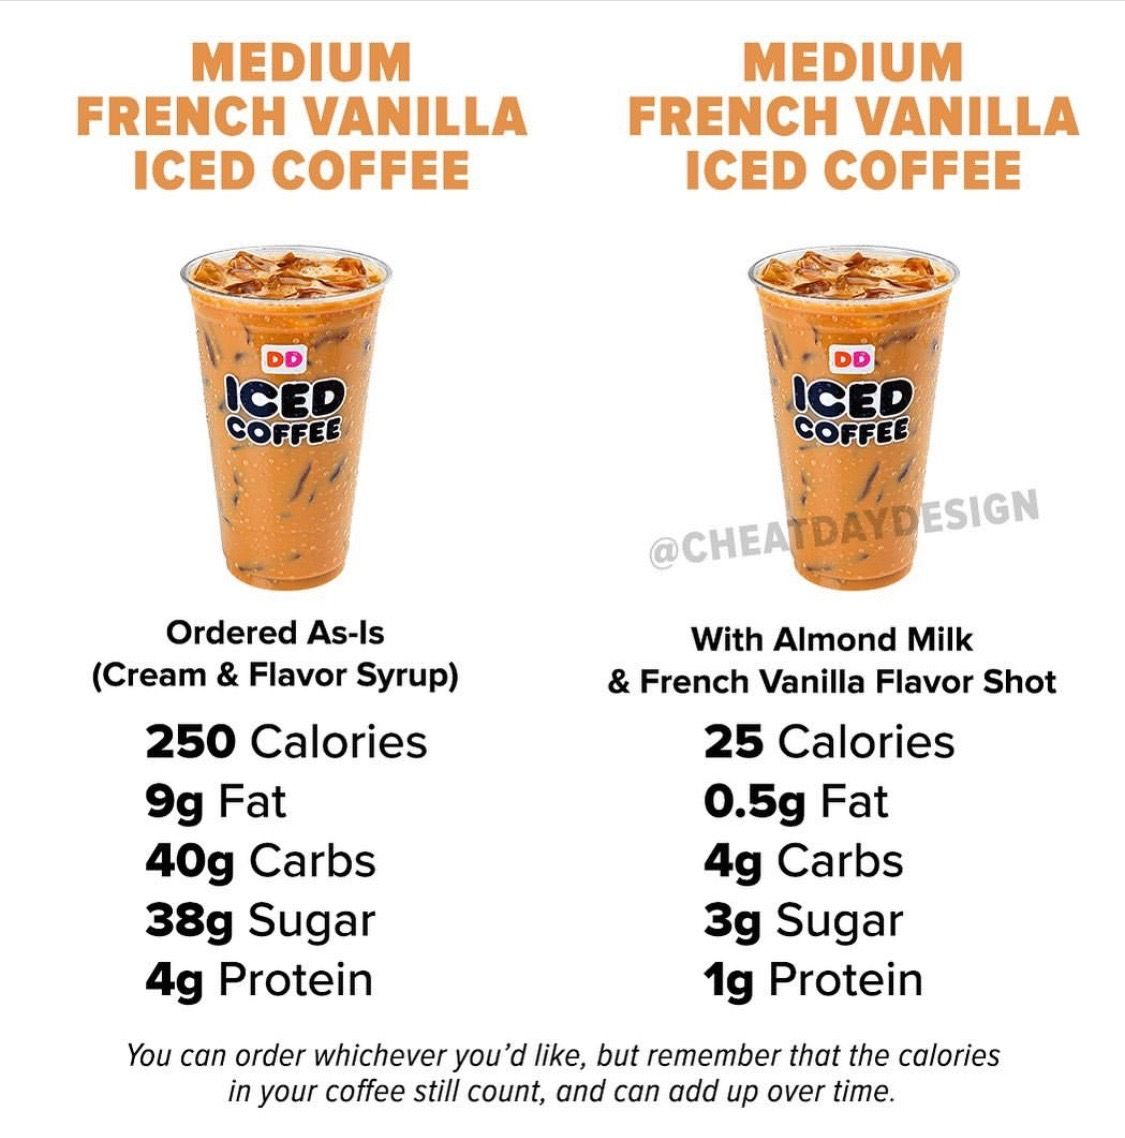 Pin by Michelle Roomsburg on Keto Diet/Low Carb (With